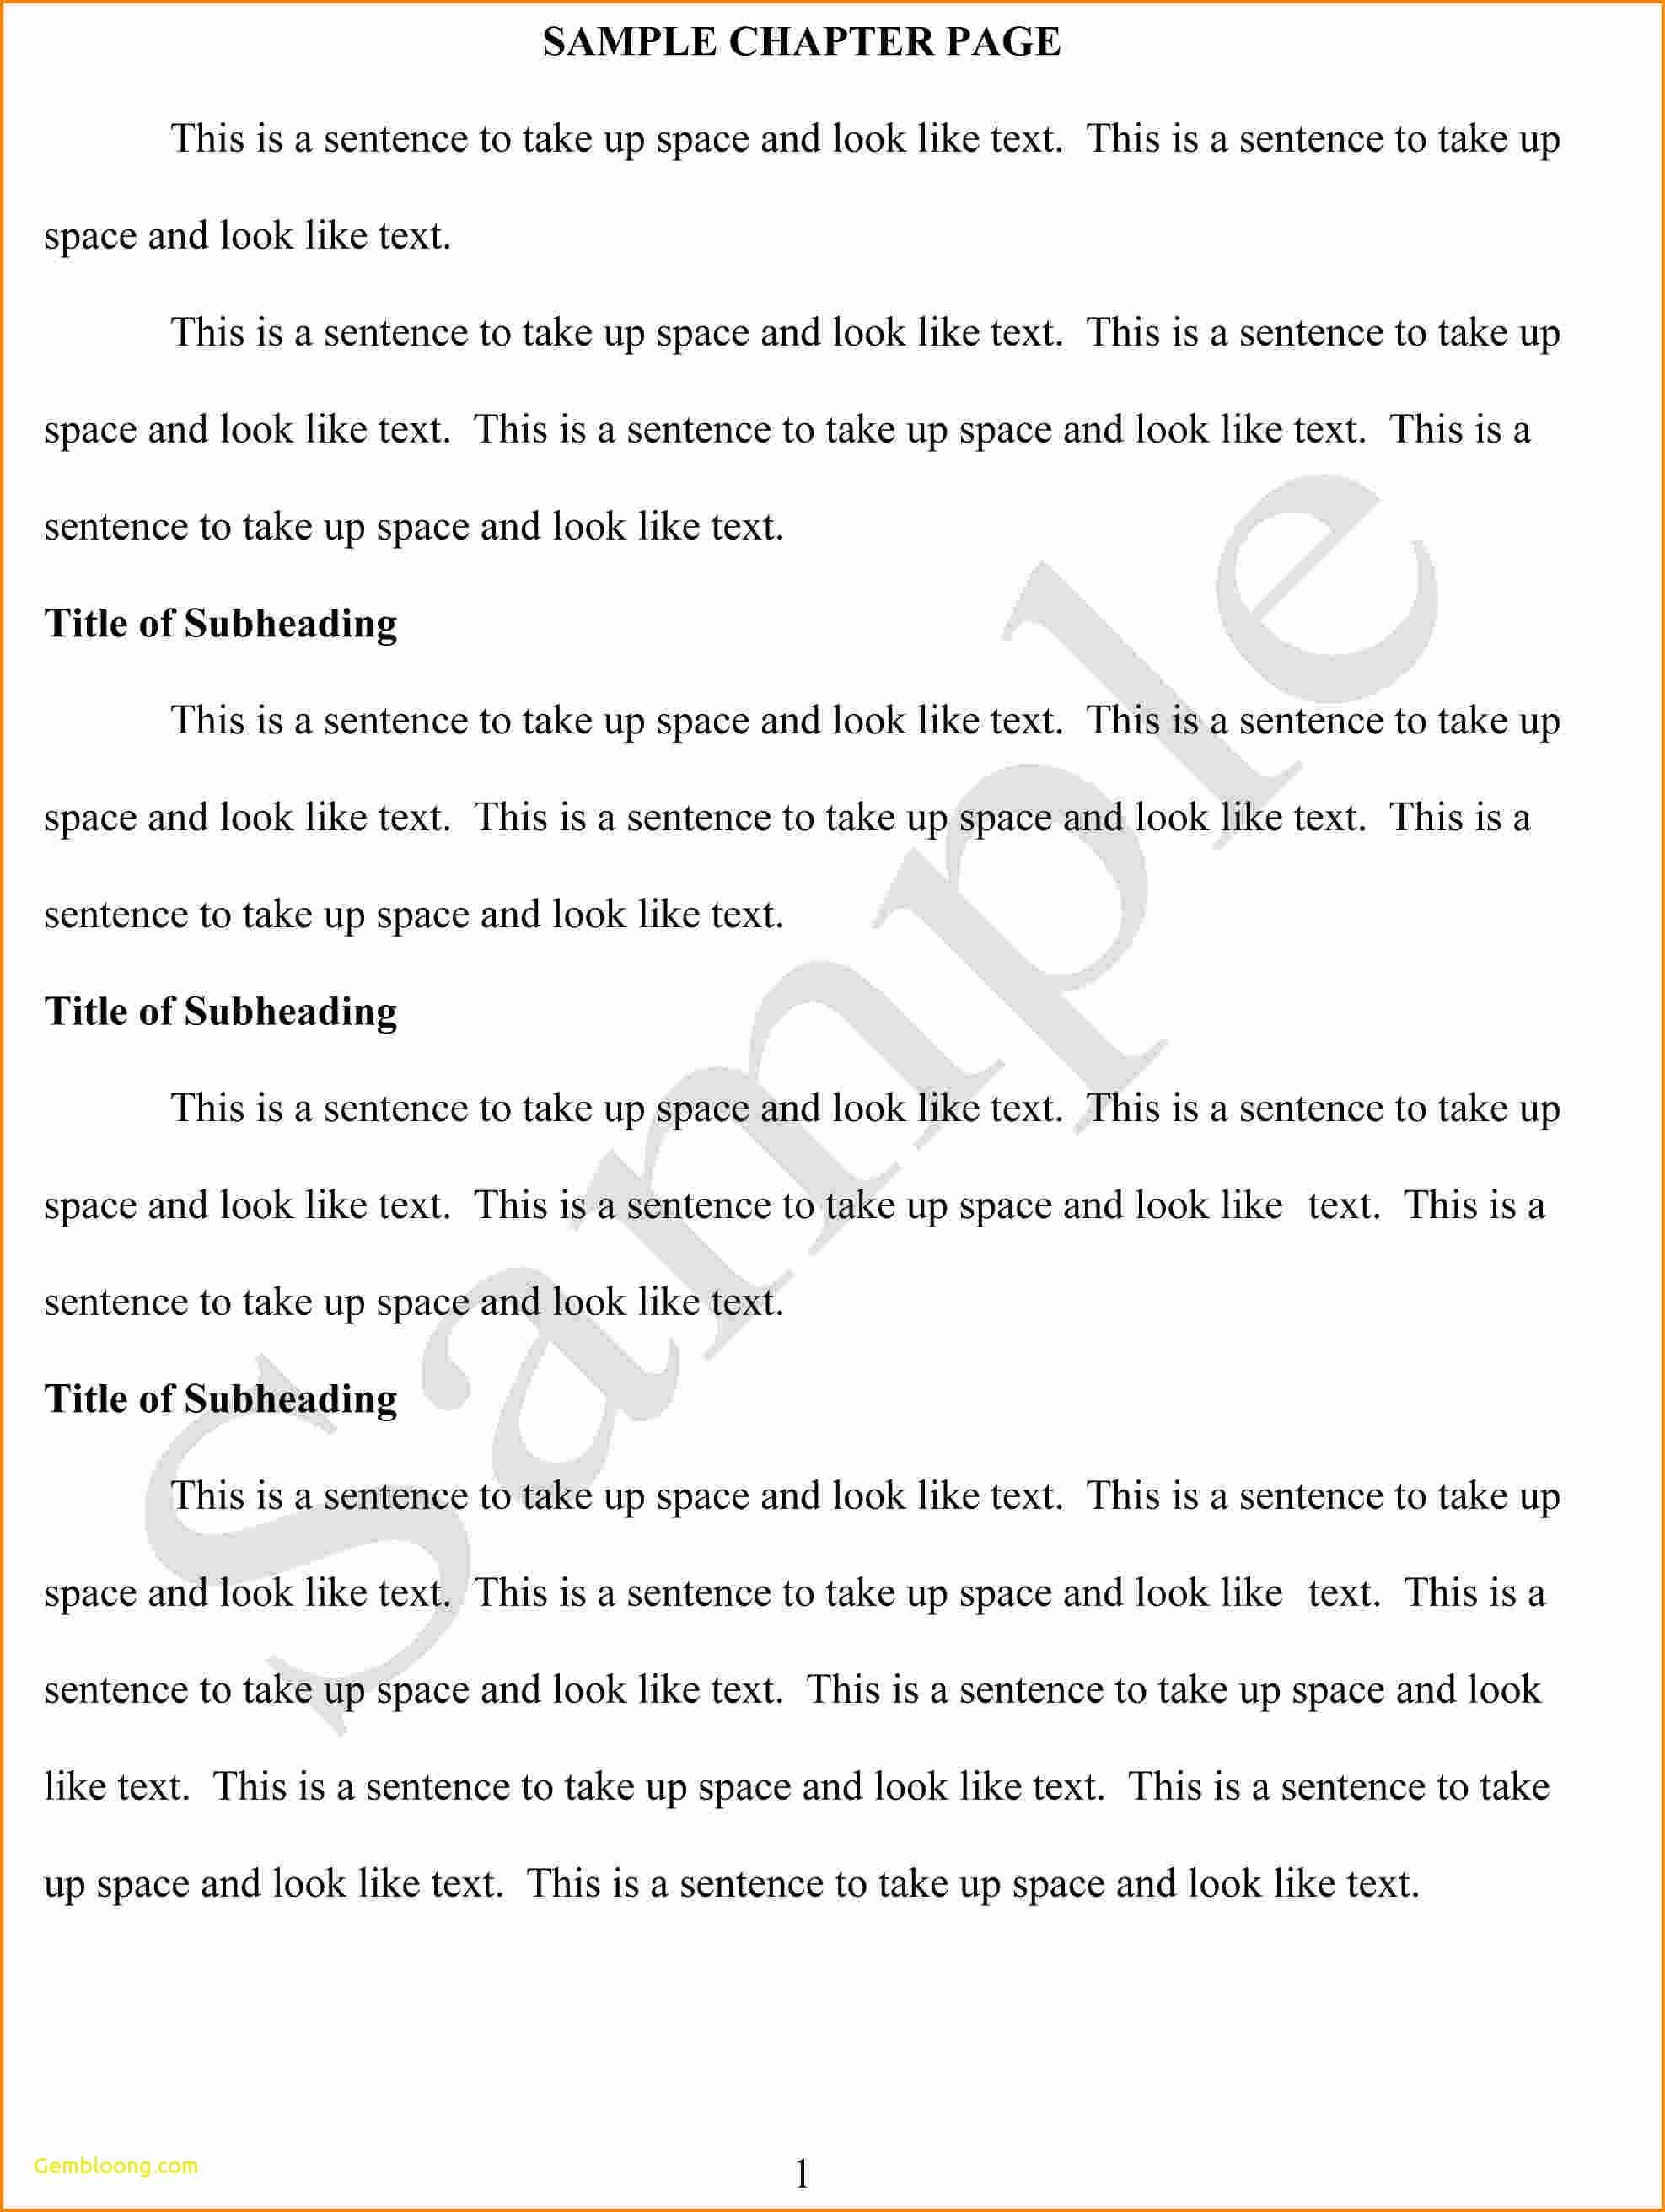 024 Process Paper Essay How To Write An Appendix20n Truancy Of Recycling Outline Example20 Research Appendices In Stupendous Sample Appendix Meaning Example Full